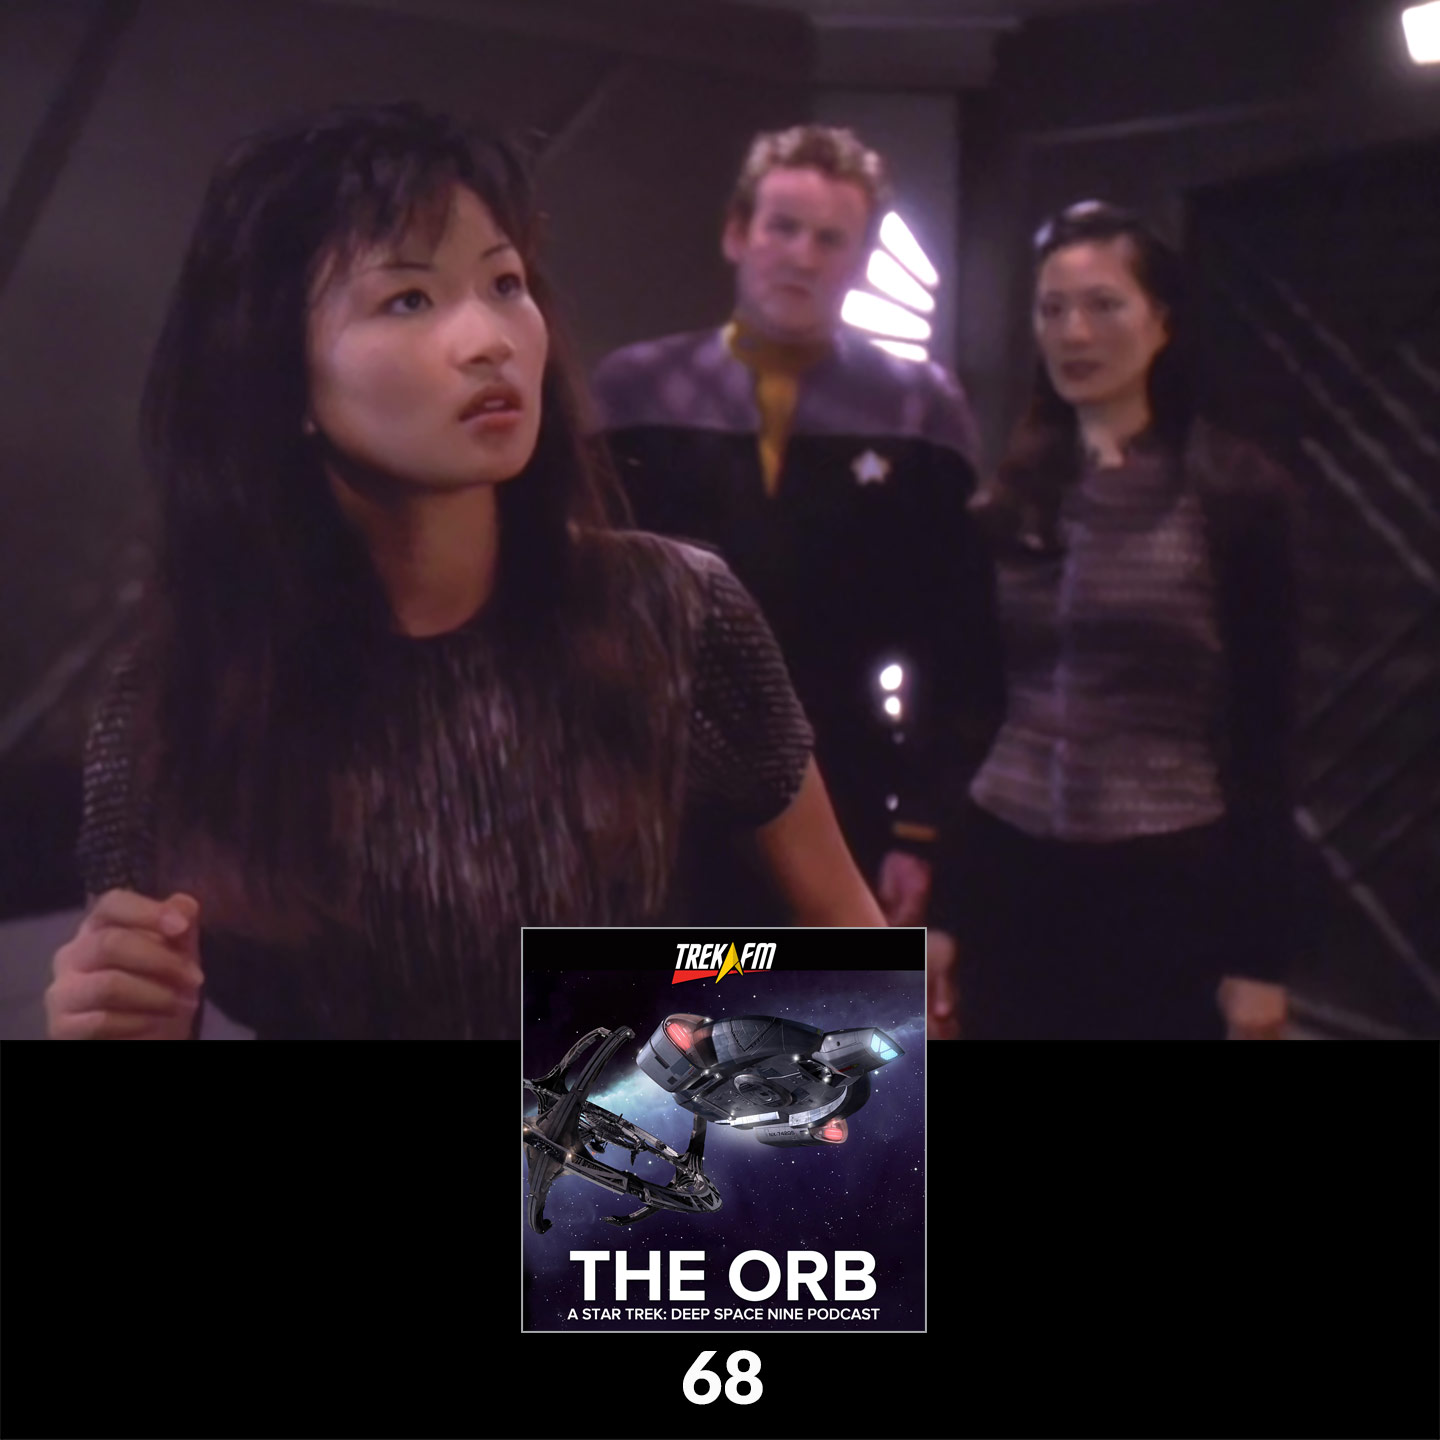 The Orb 68: Doomed from the Beginning